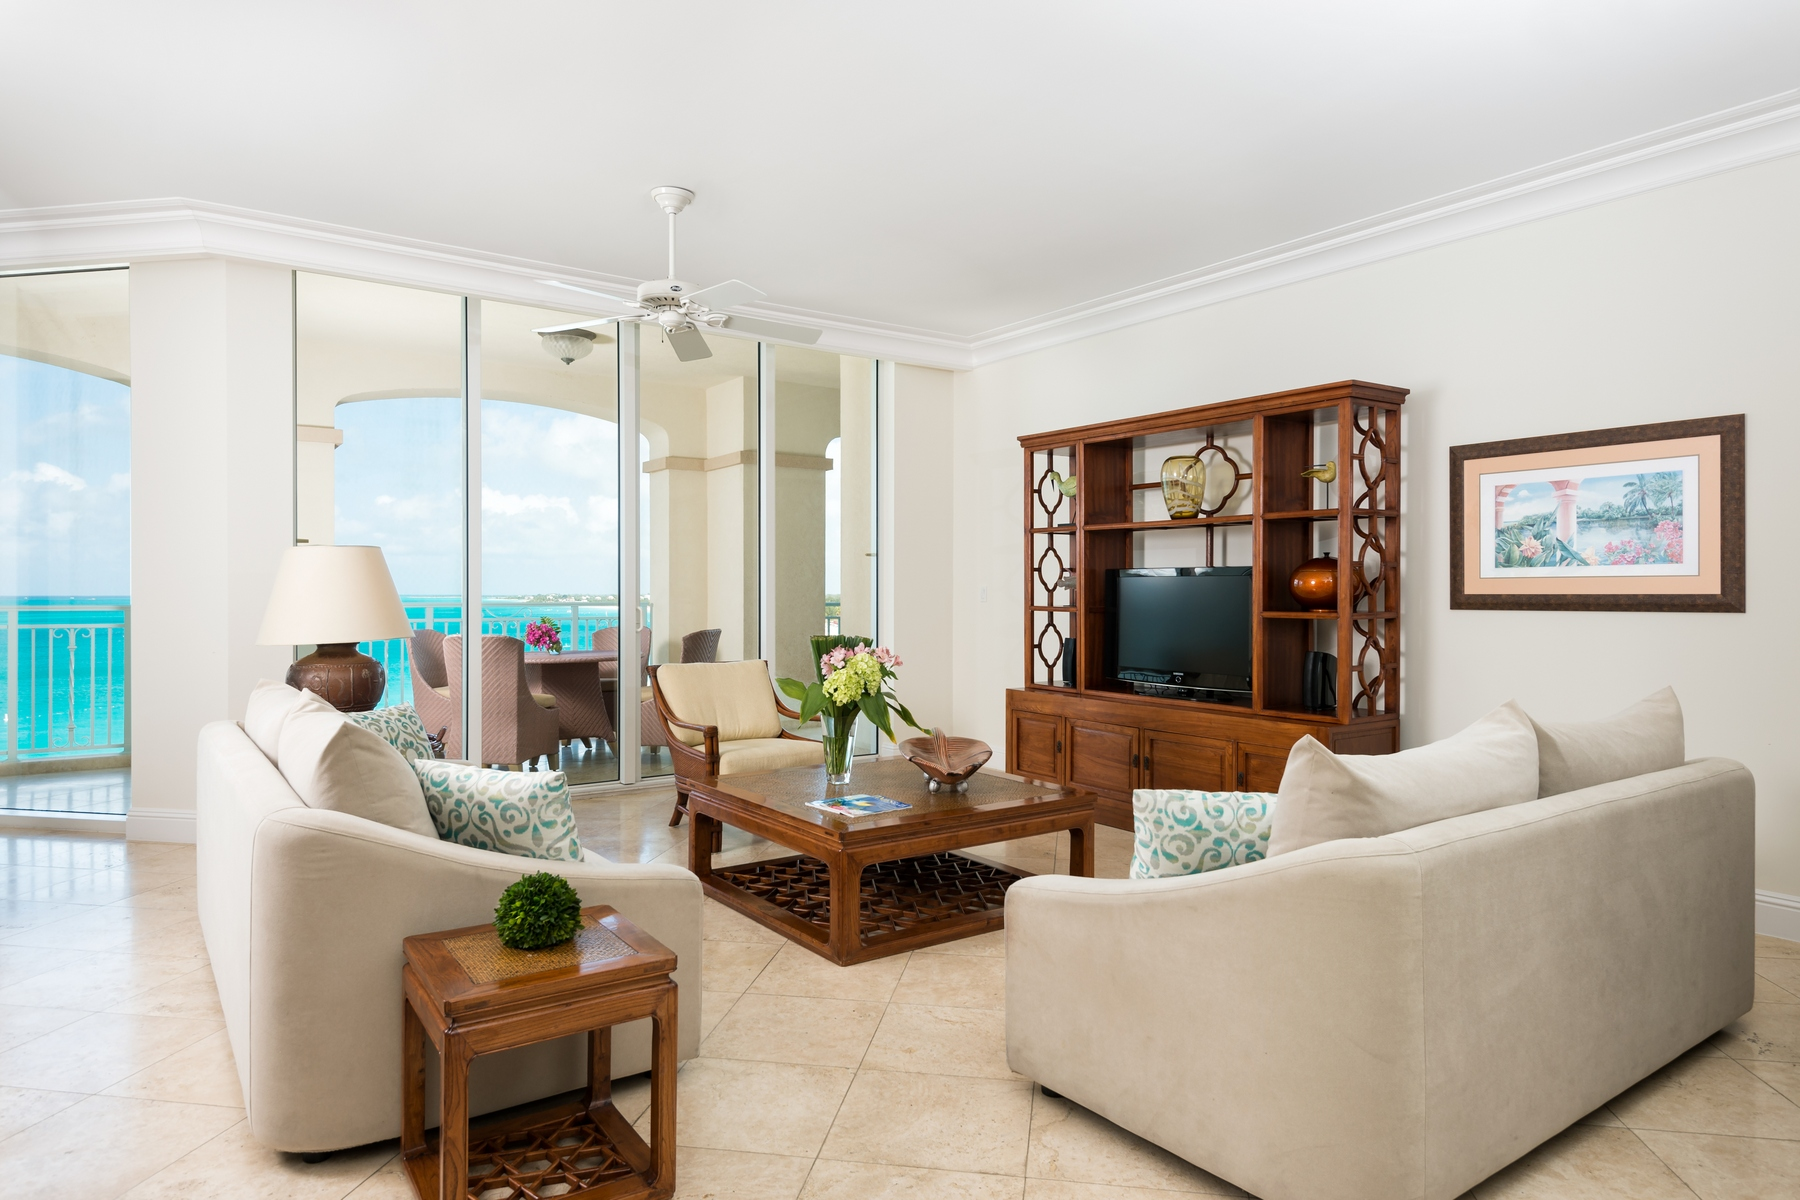 Condominium for Sale at Seven Stars - Suite 1609/1610 Seven Stars Resort, Grace Bay, Providenciales Turks And Caicos Islands